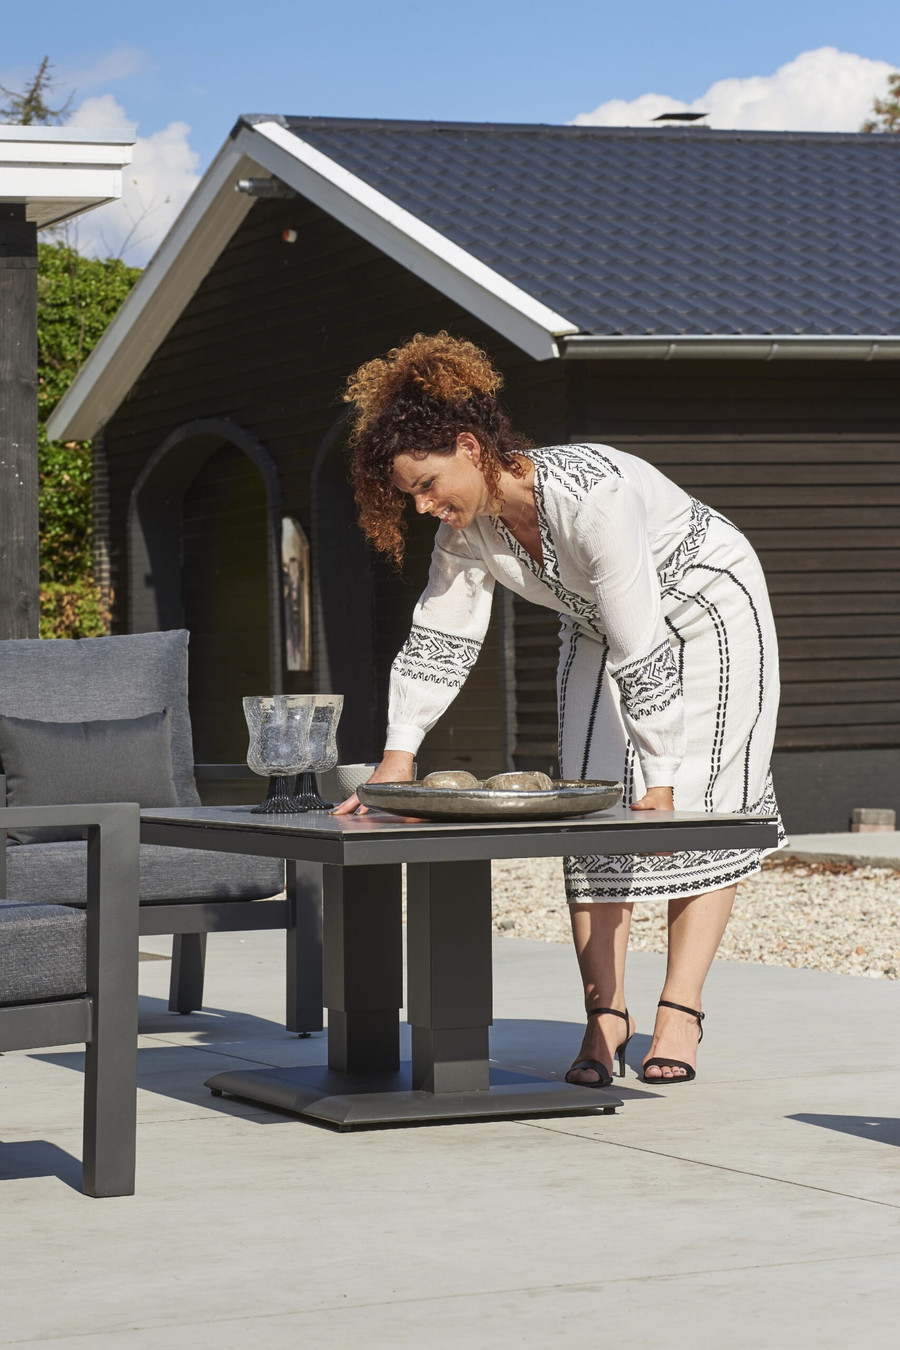 Zeb height adjustable outdoor coffee table - shwon at its lowest setting. Adjust the height from 51cm to 73cm